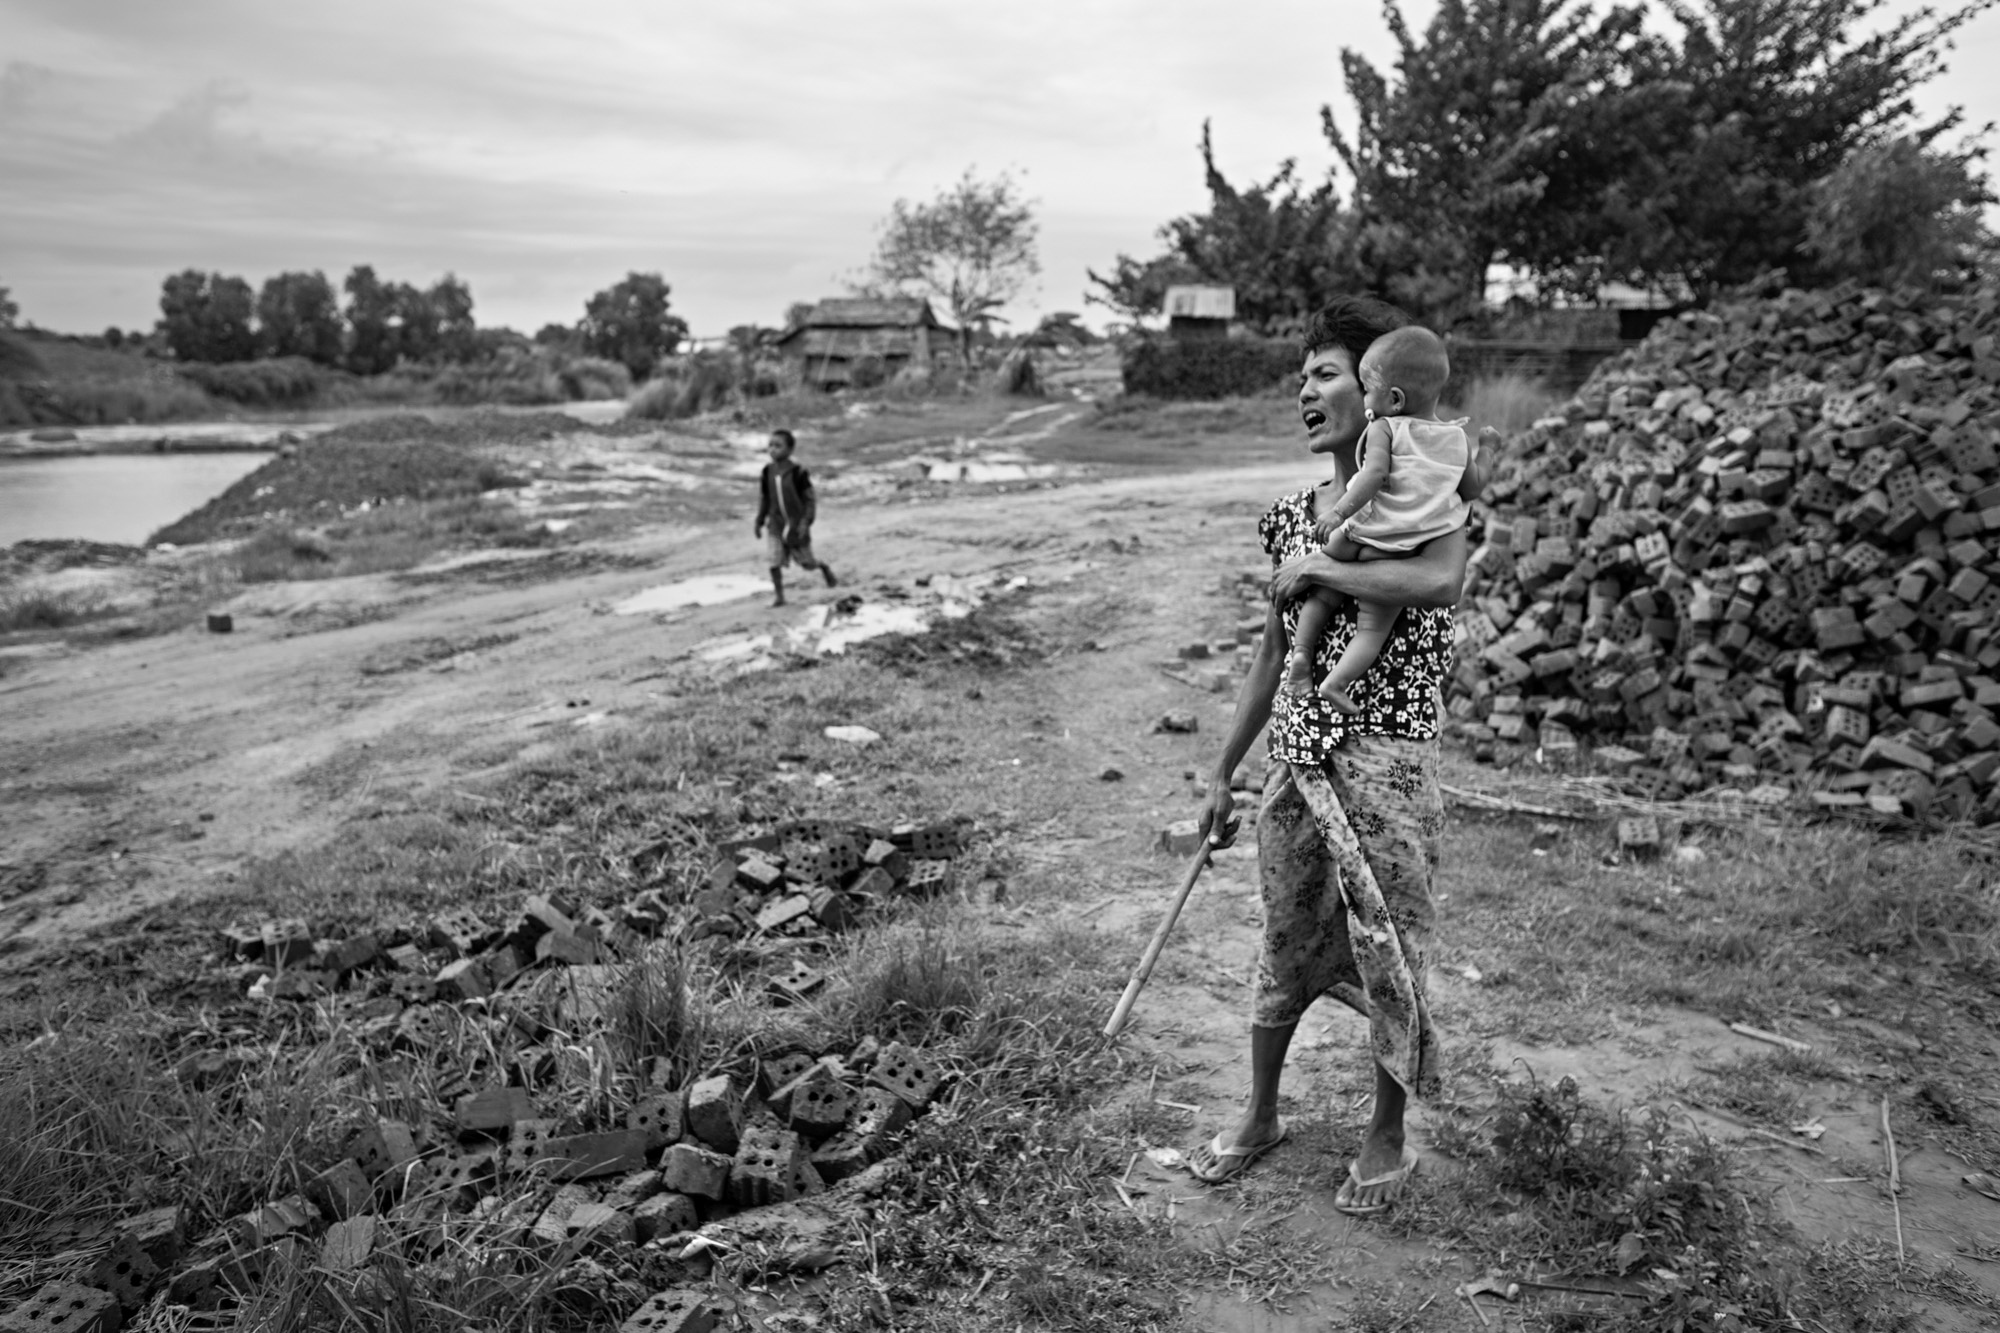 Than Nwe yells for her children to return home in the evening.